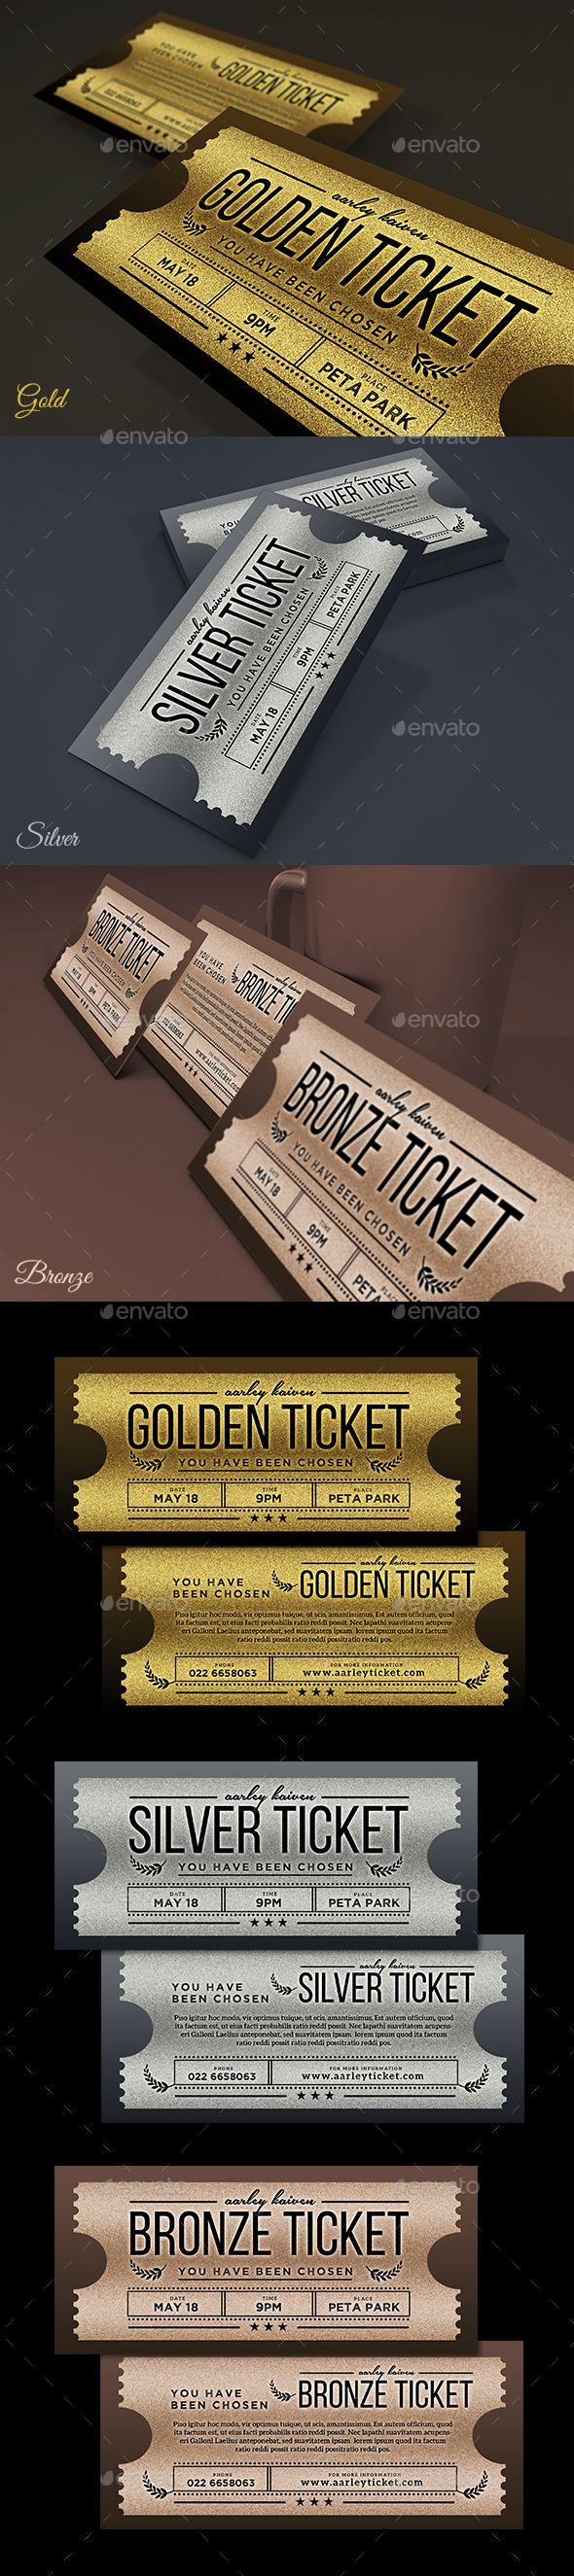 Multipurpose golden silver ticket invitation ticket invitation golden silver ticket invitation psd template company 925x4 download httpsgraphicriveritemgolden silver ticket invitation18200408ref stopboris Images